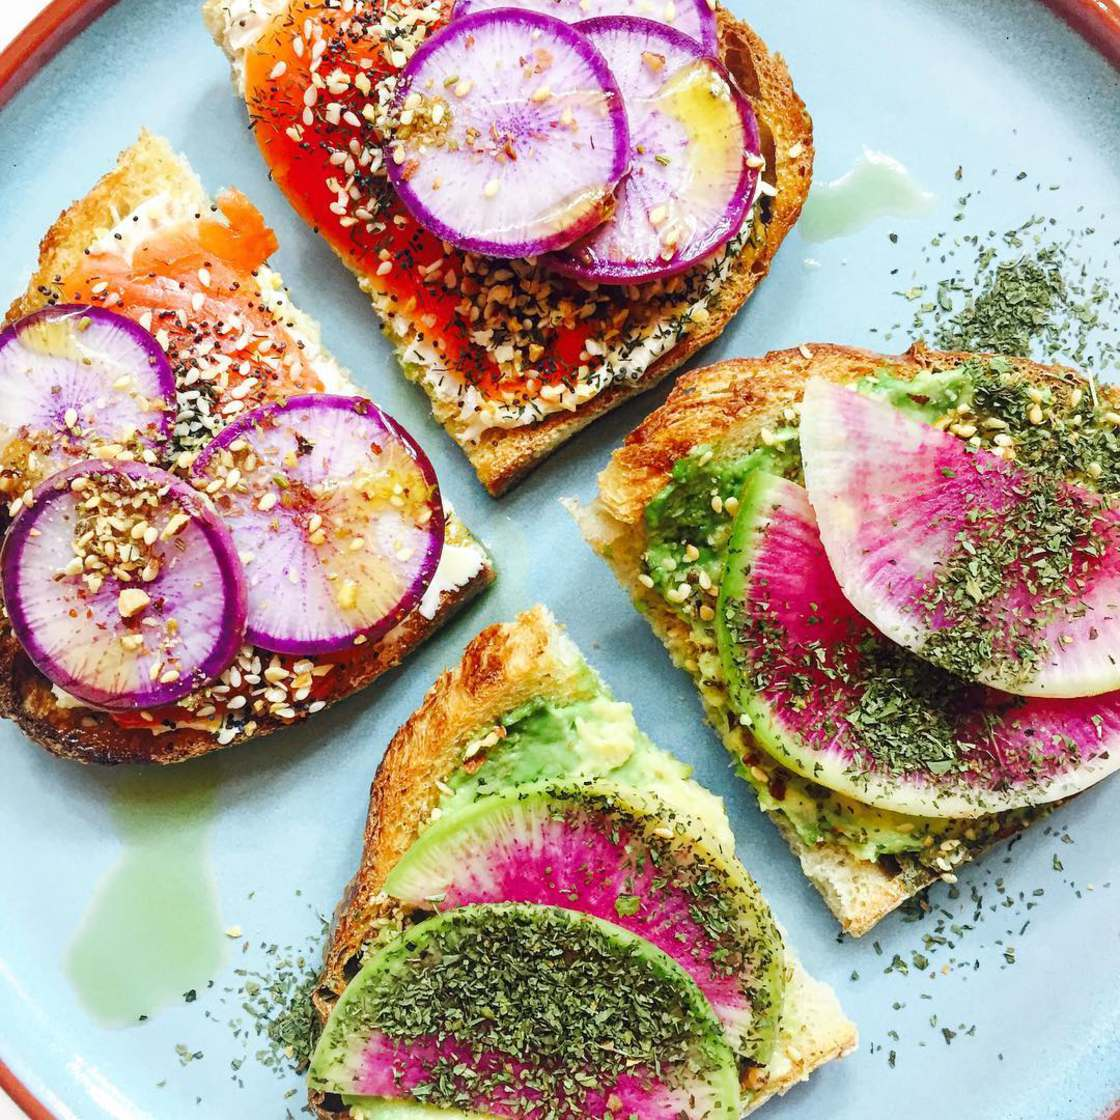 Unicorn Toast – Creating natural and ultra-colorful toasts